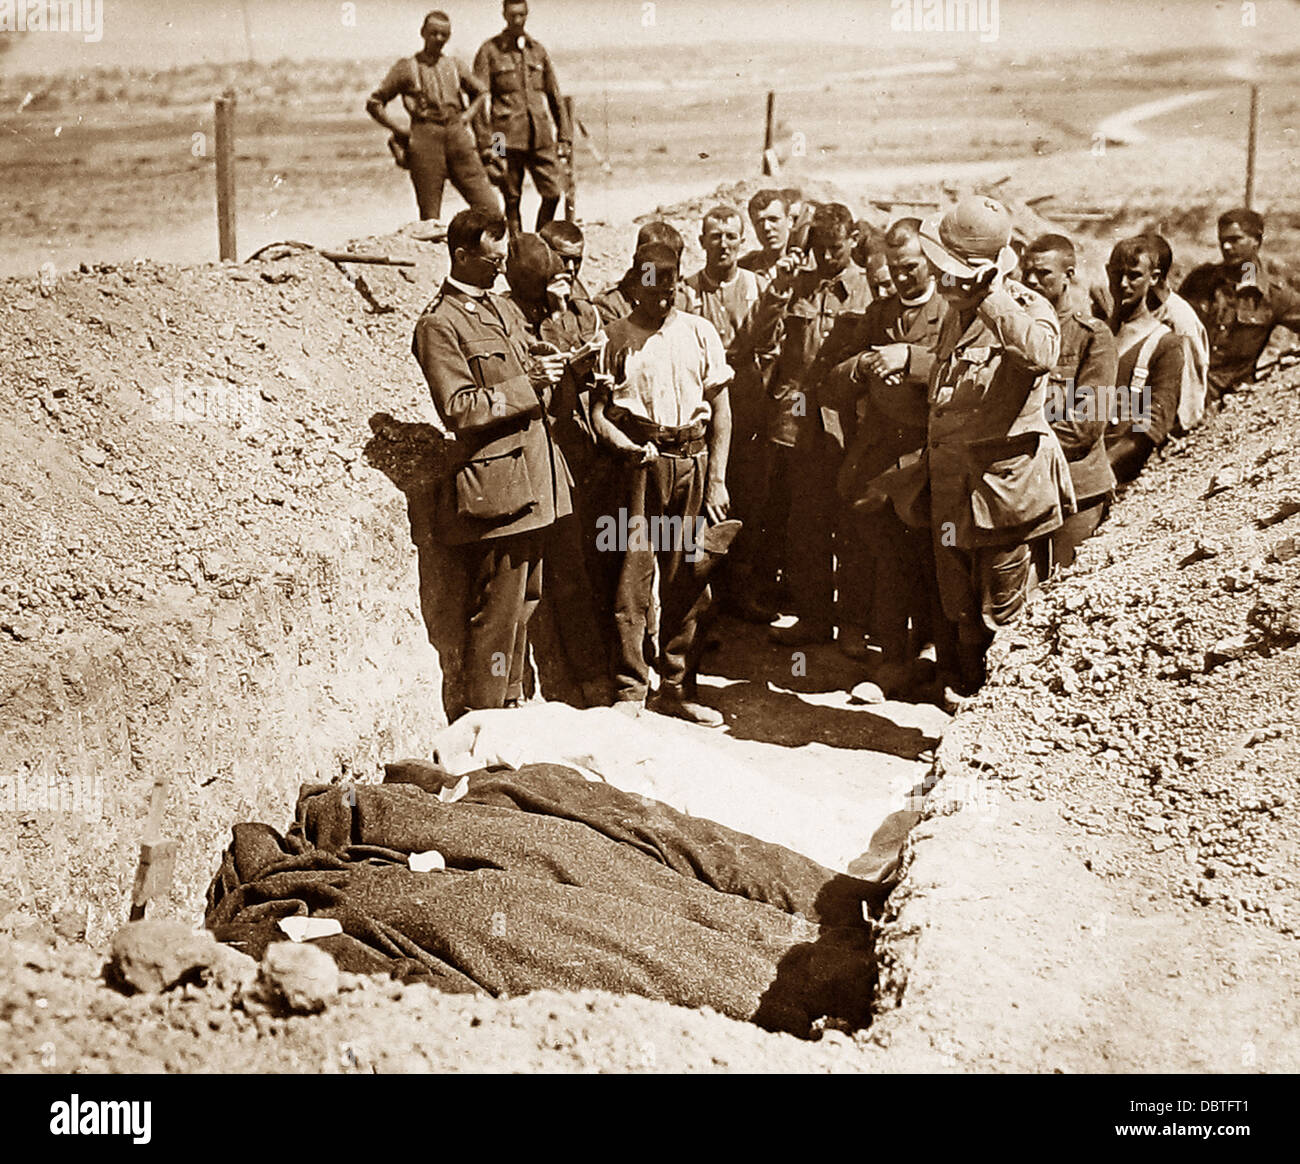 A burial ceremony with Church of England, Roman Catholic and Presbyterian Clergy during WW1 - Stock Image